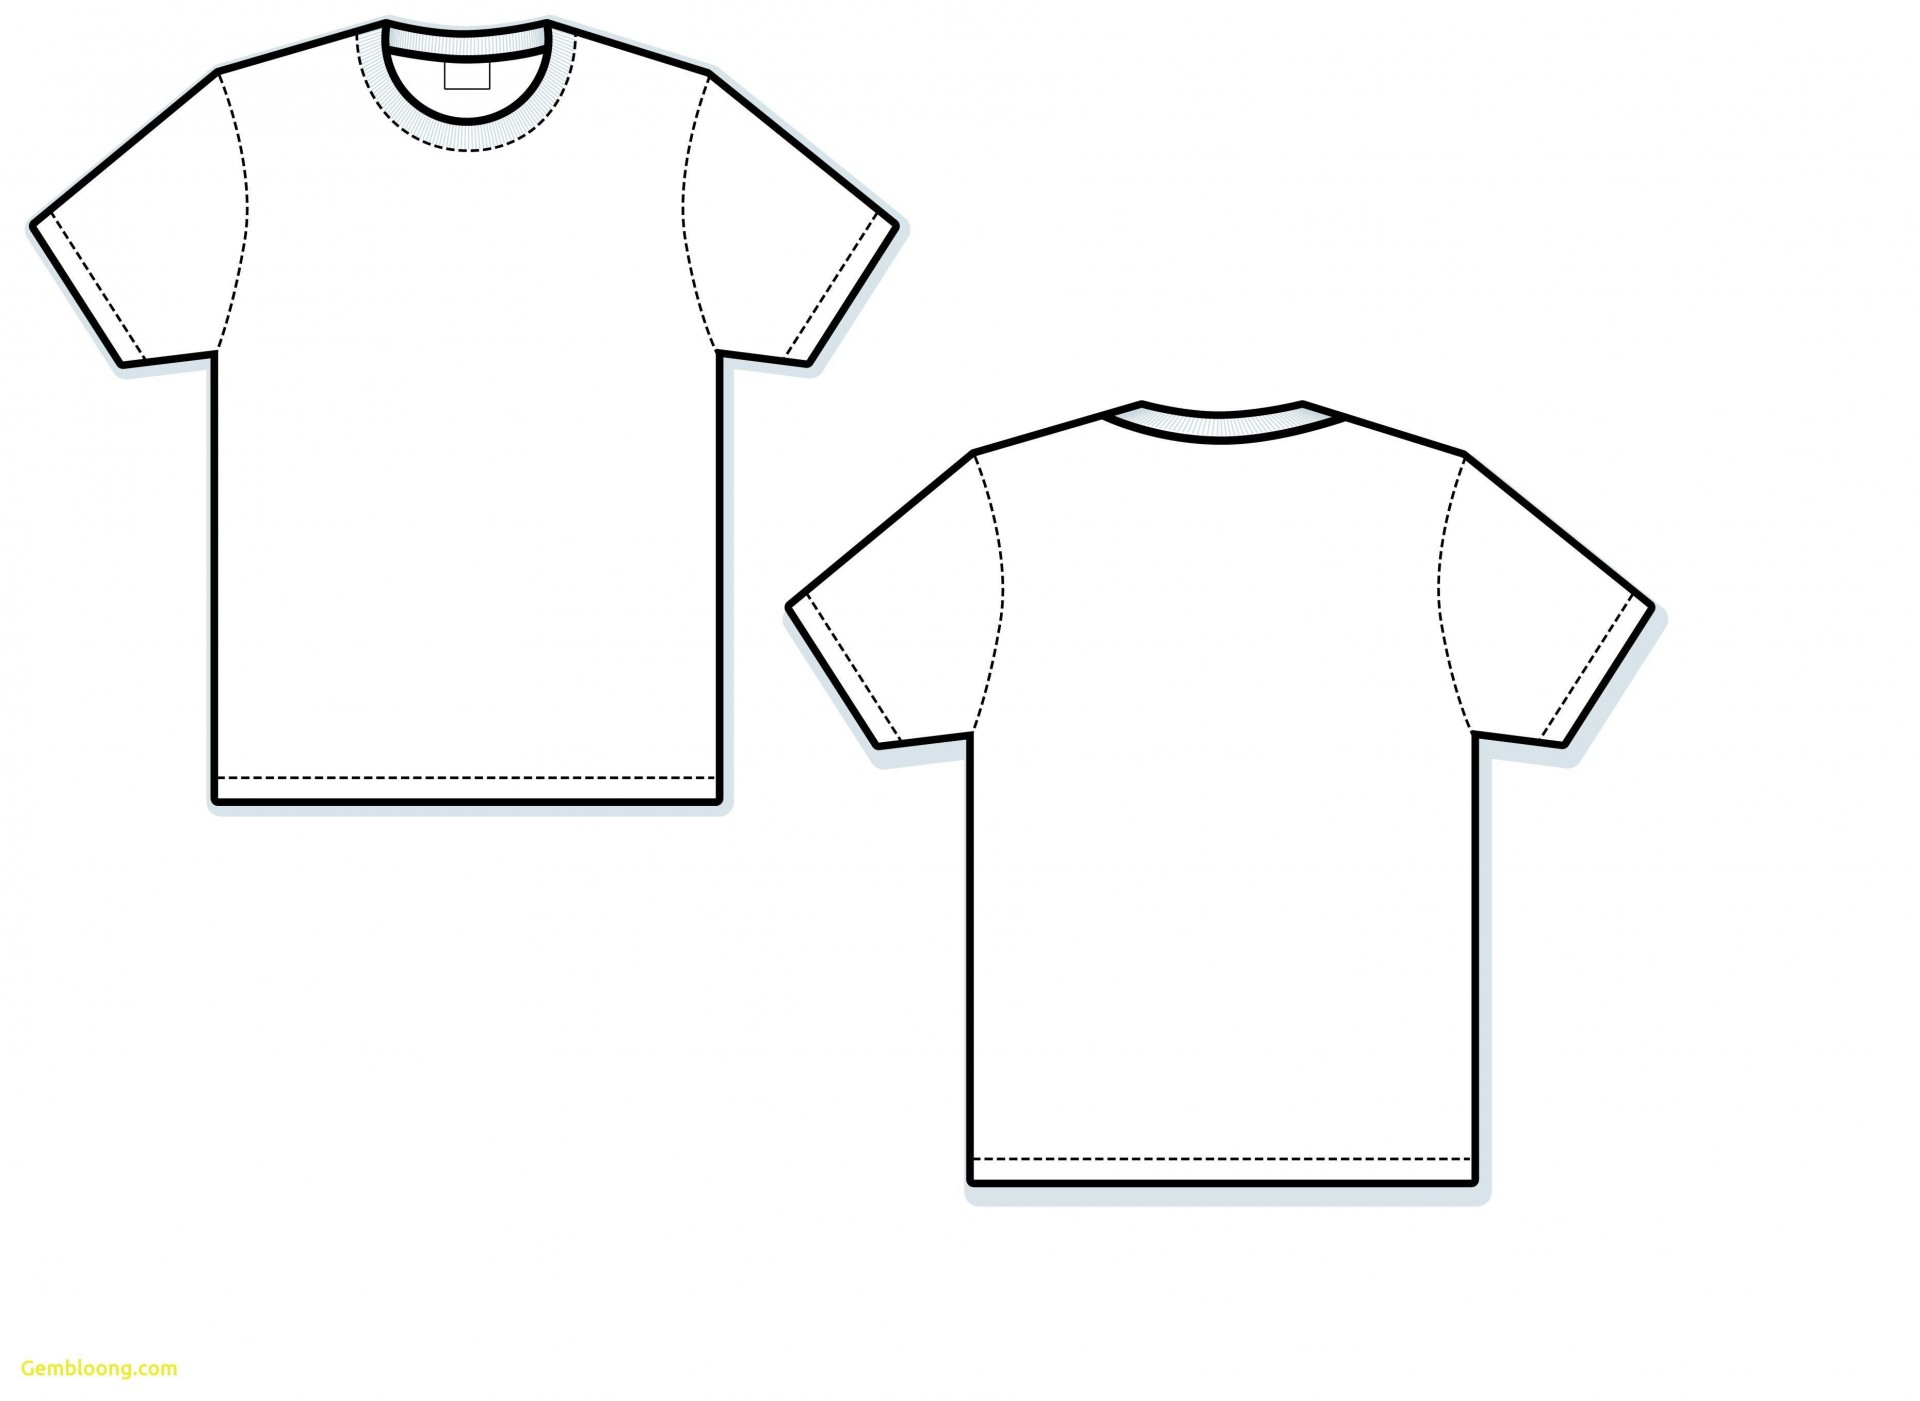 001 Wonderful Blank Tee Shirt Template Photo  T Design Pdf Free T-shirt Front And Back Download1920